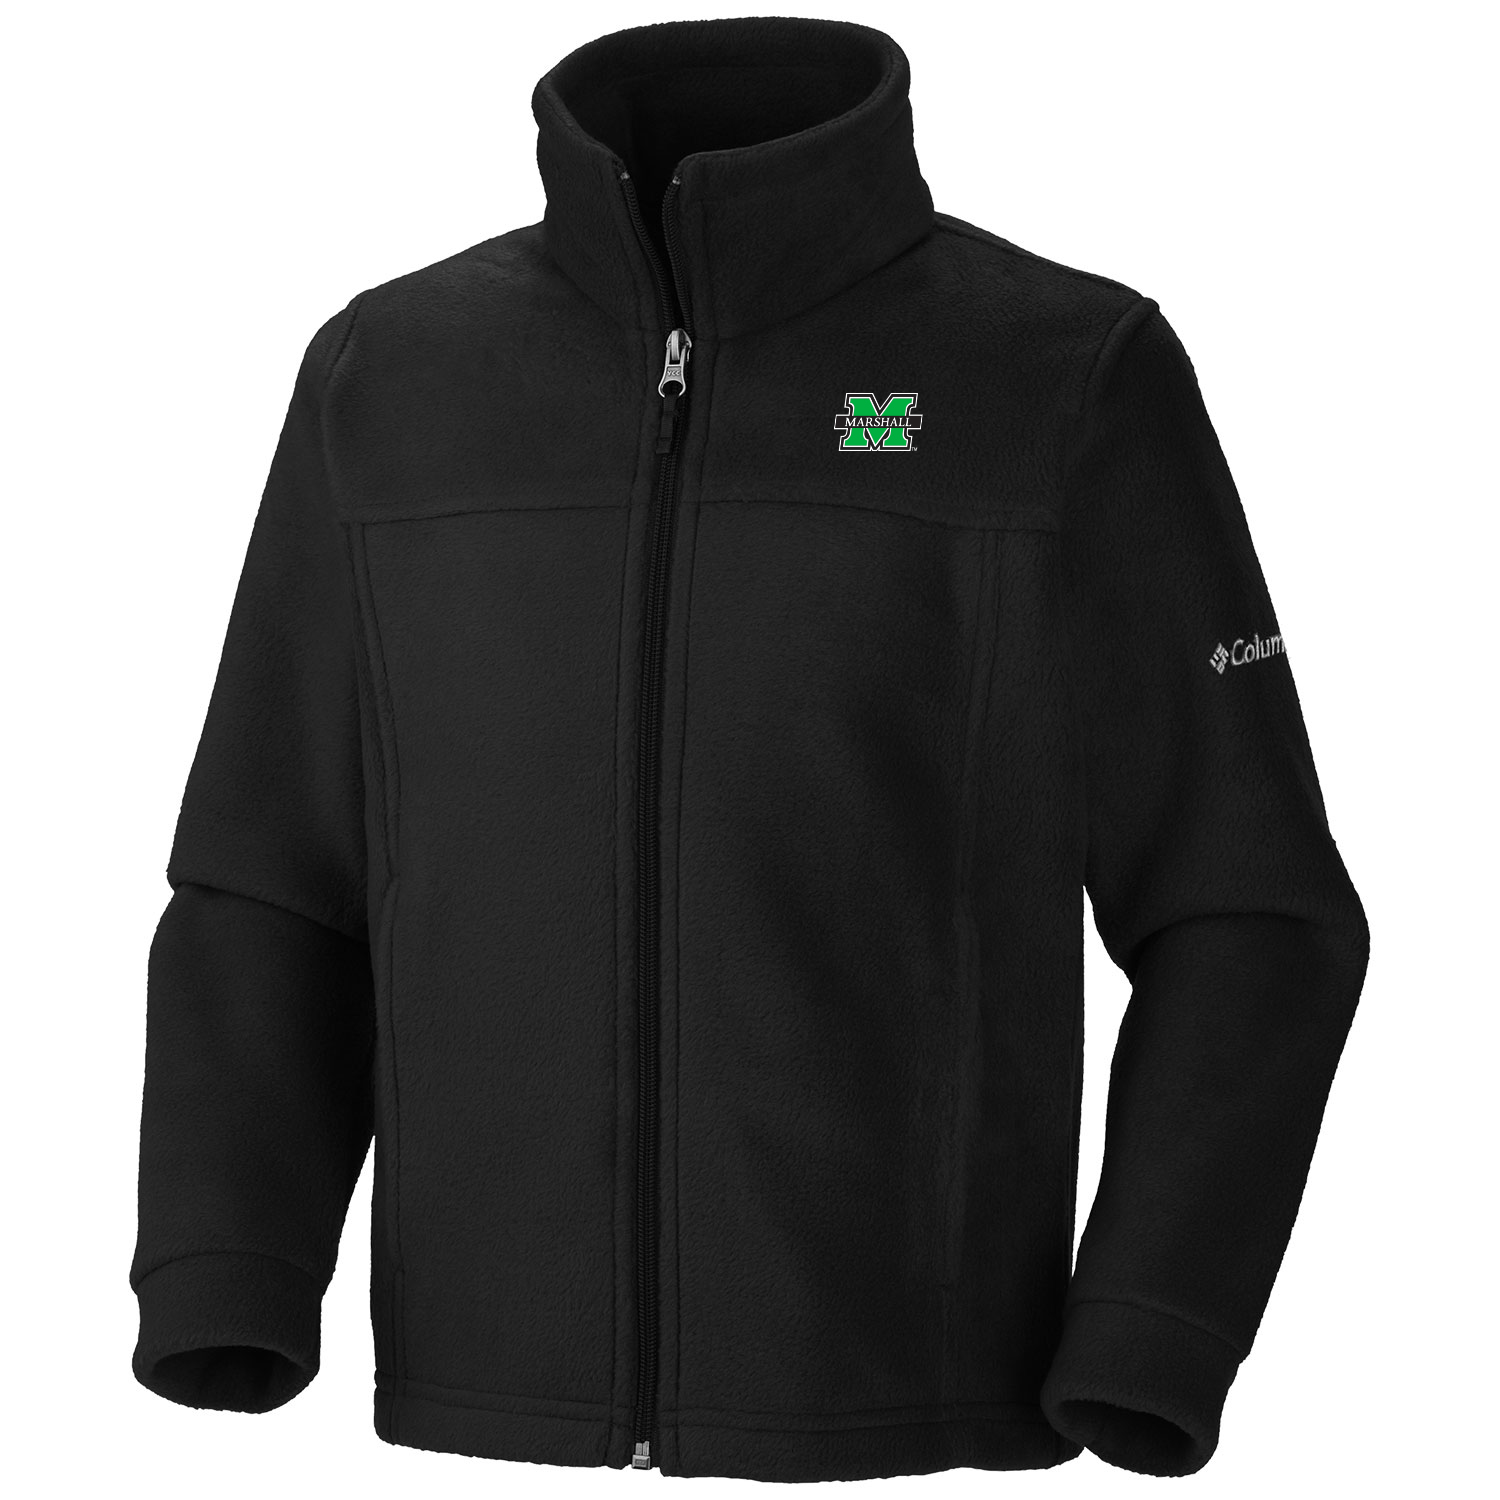 Columbia <br> Youth Full zip Flanker <br> 20735 <br> XS-XL <br> $47.99